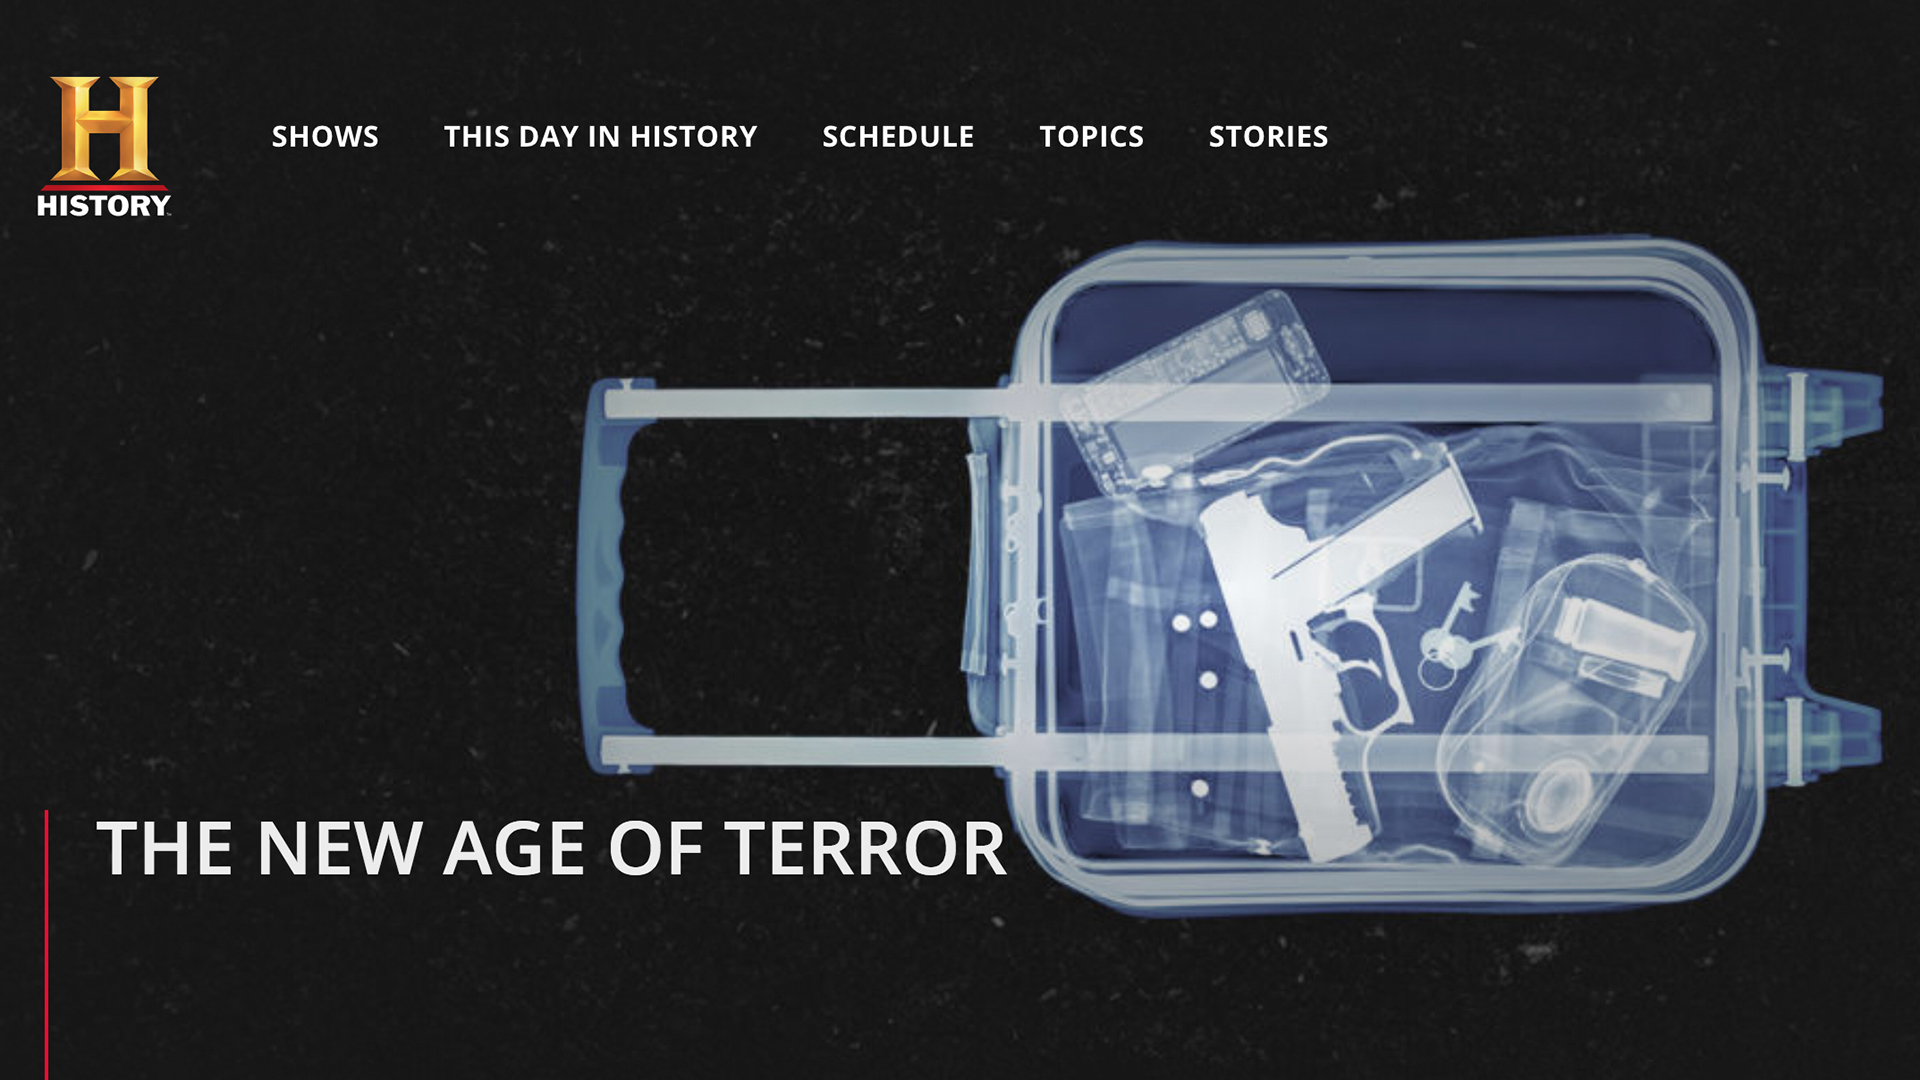 The New Age of Terror - Editor